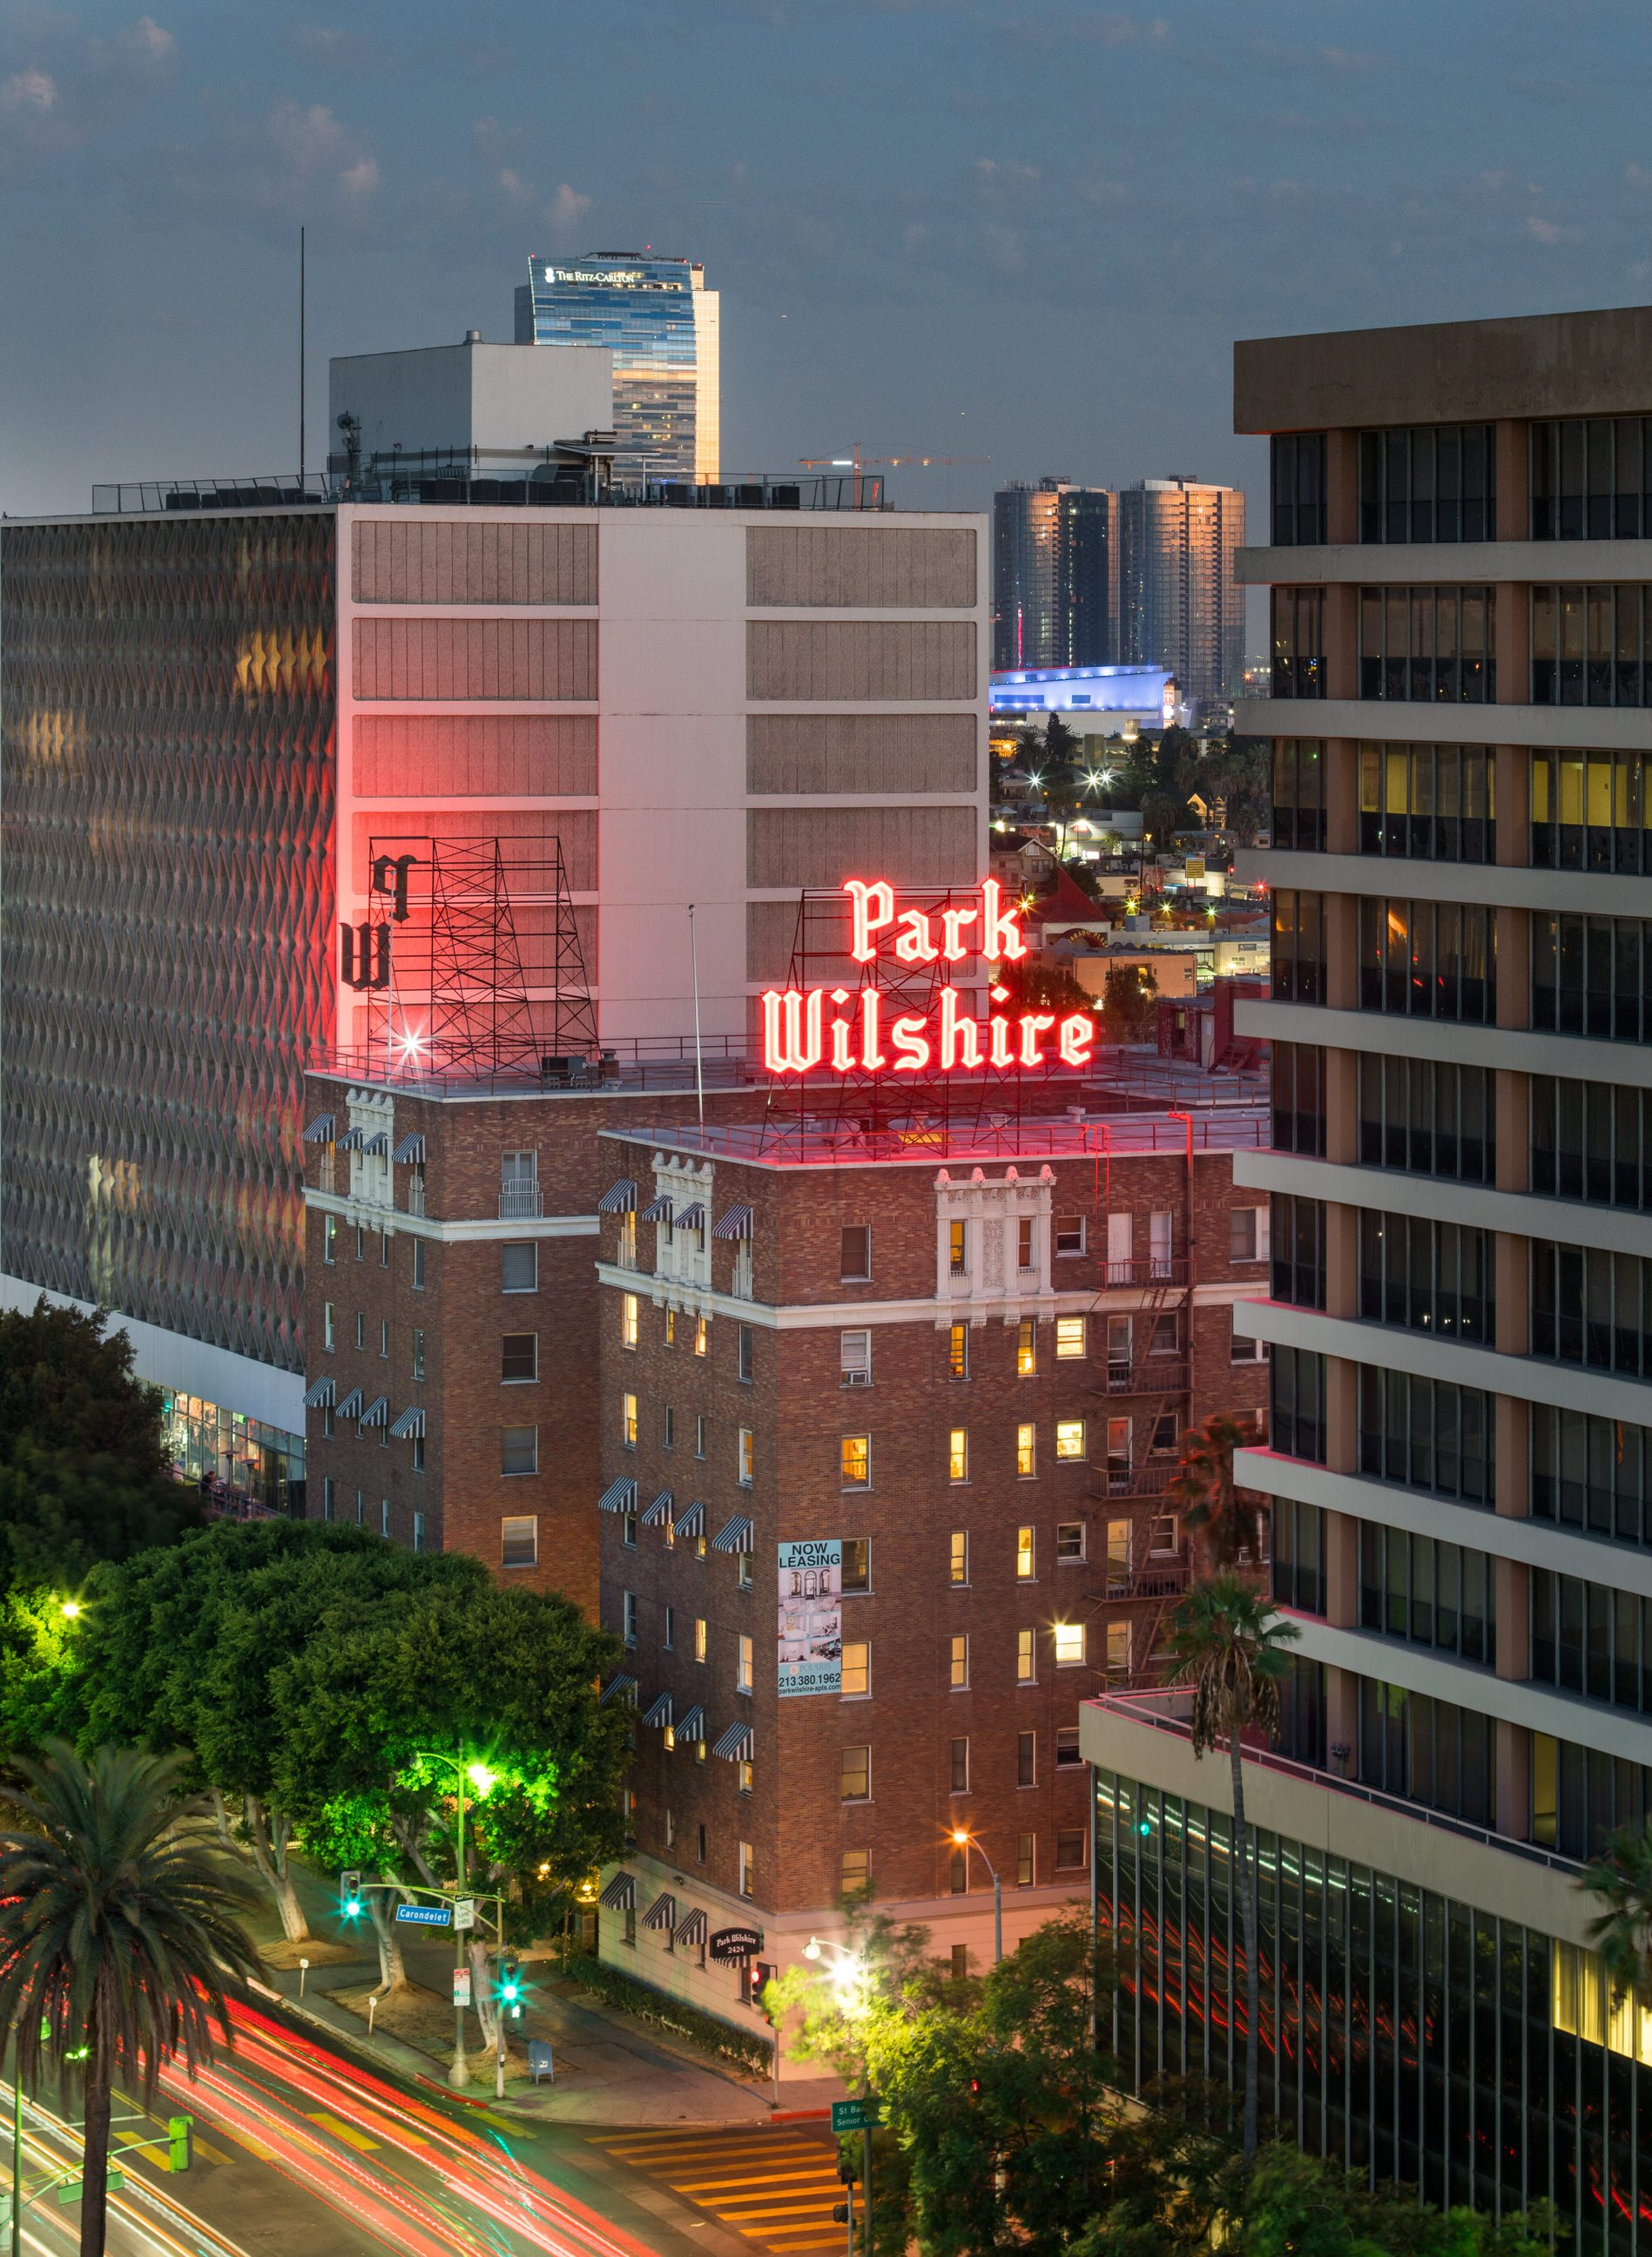 Park Wilshire Apartments in Koreatown, Los Angeles, CA